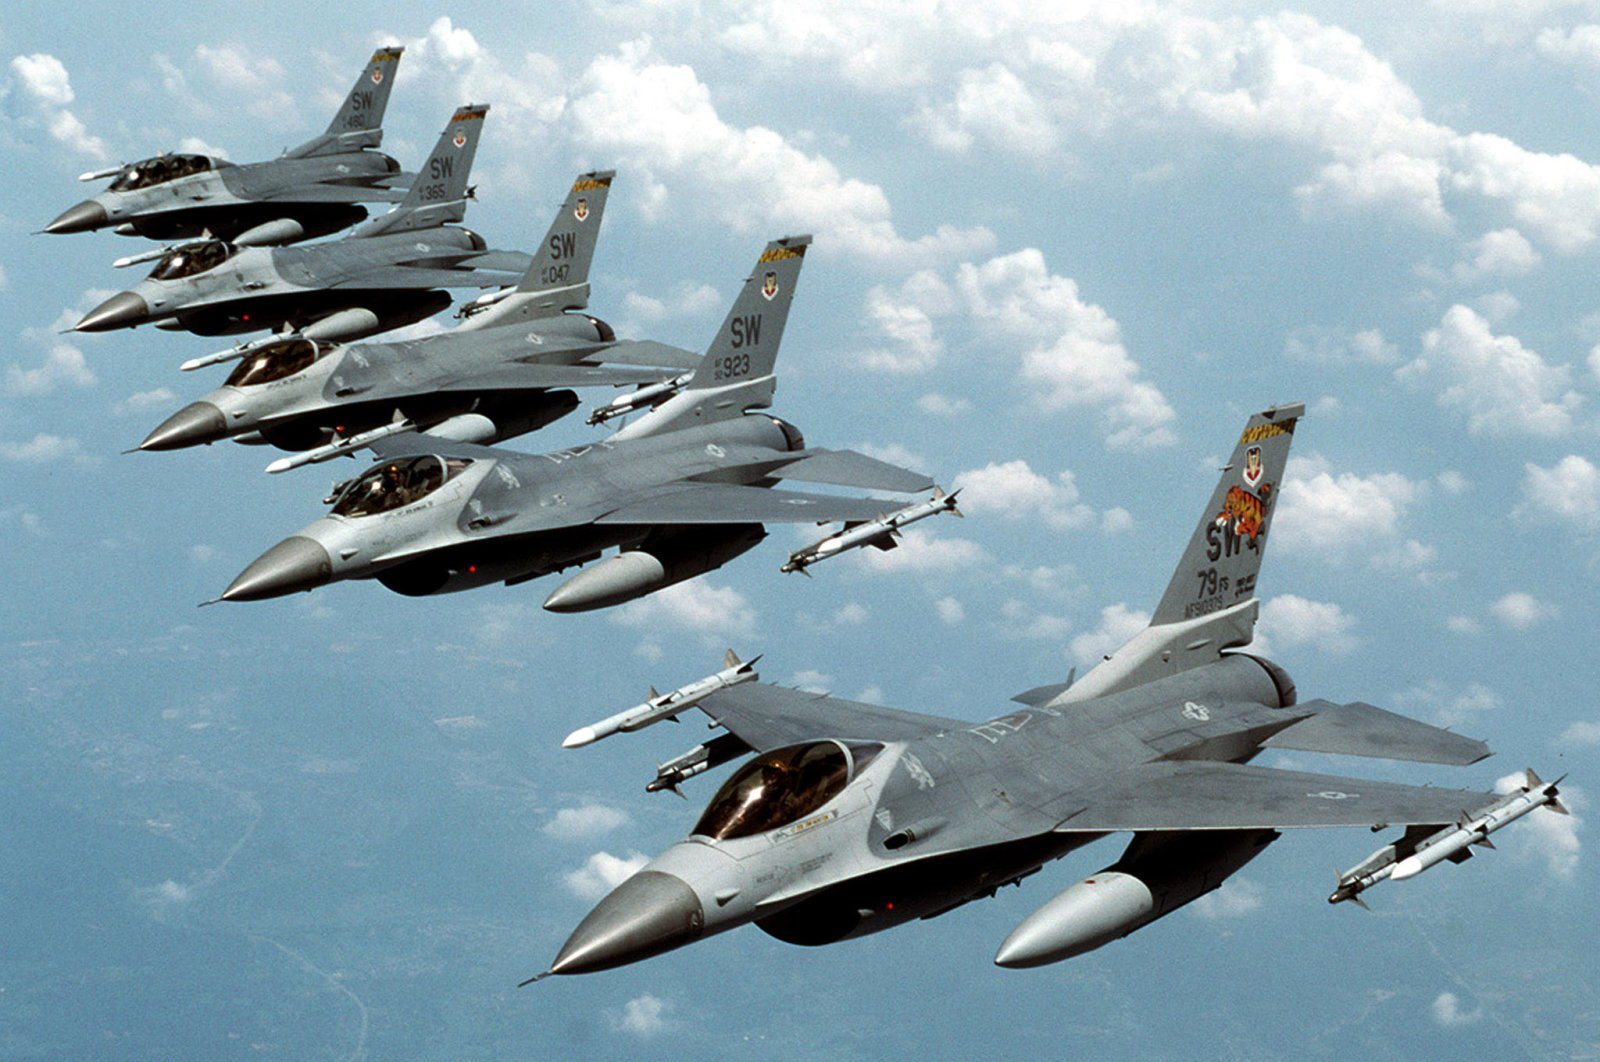 """Five U.S. Air Force F-16 """"Fighting Falcon"""" jets fly in echelon formation over the U.S. en route to an exercise in this undated photograph. (Reuters Photo)"""